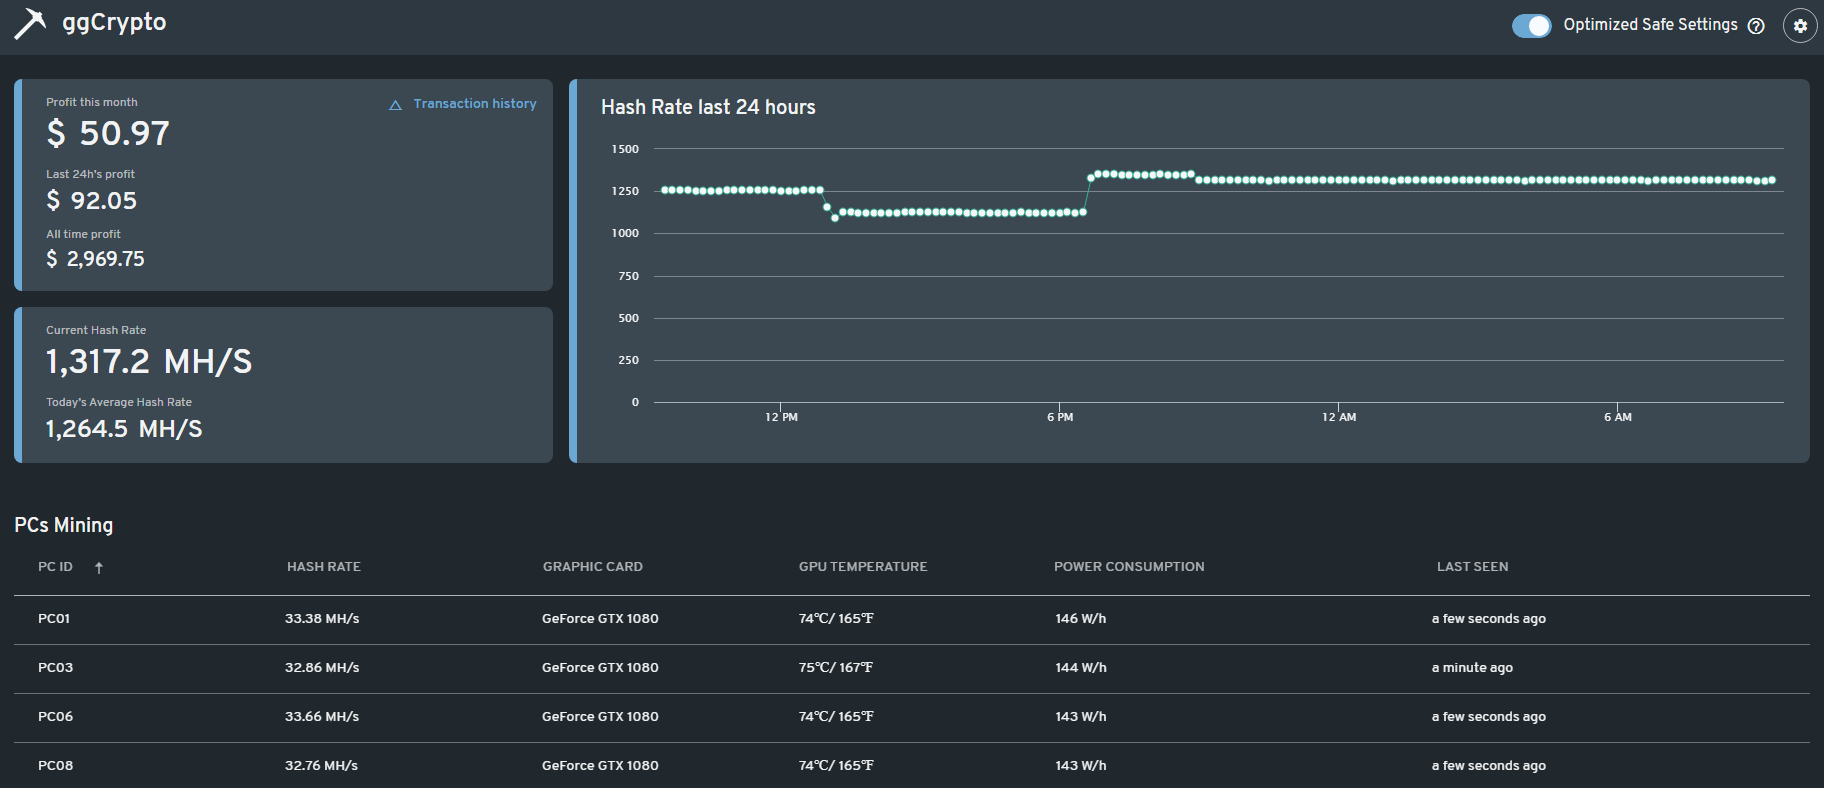 A view of mining stats through ggCrypto once the service is set